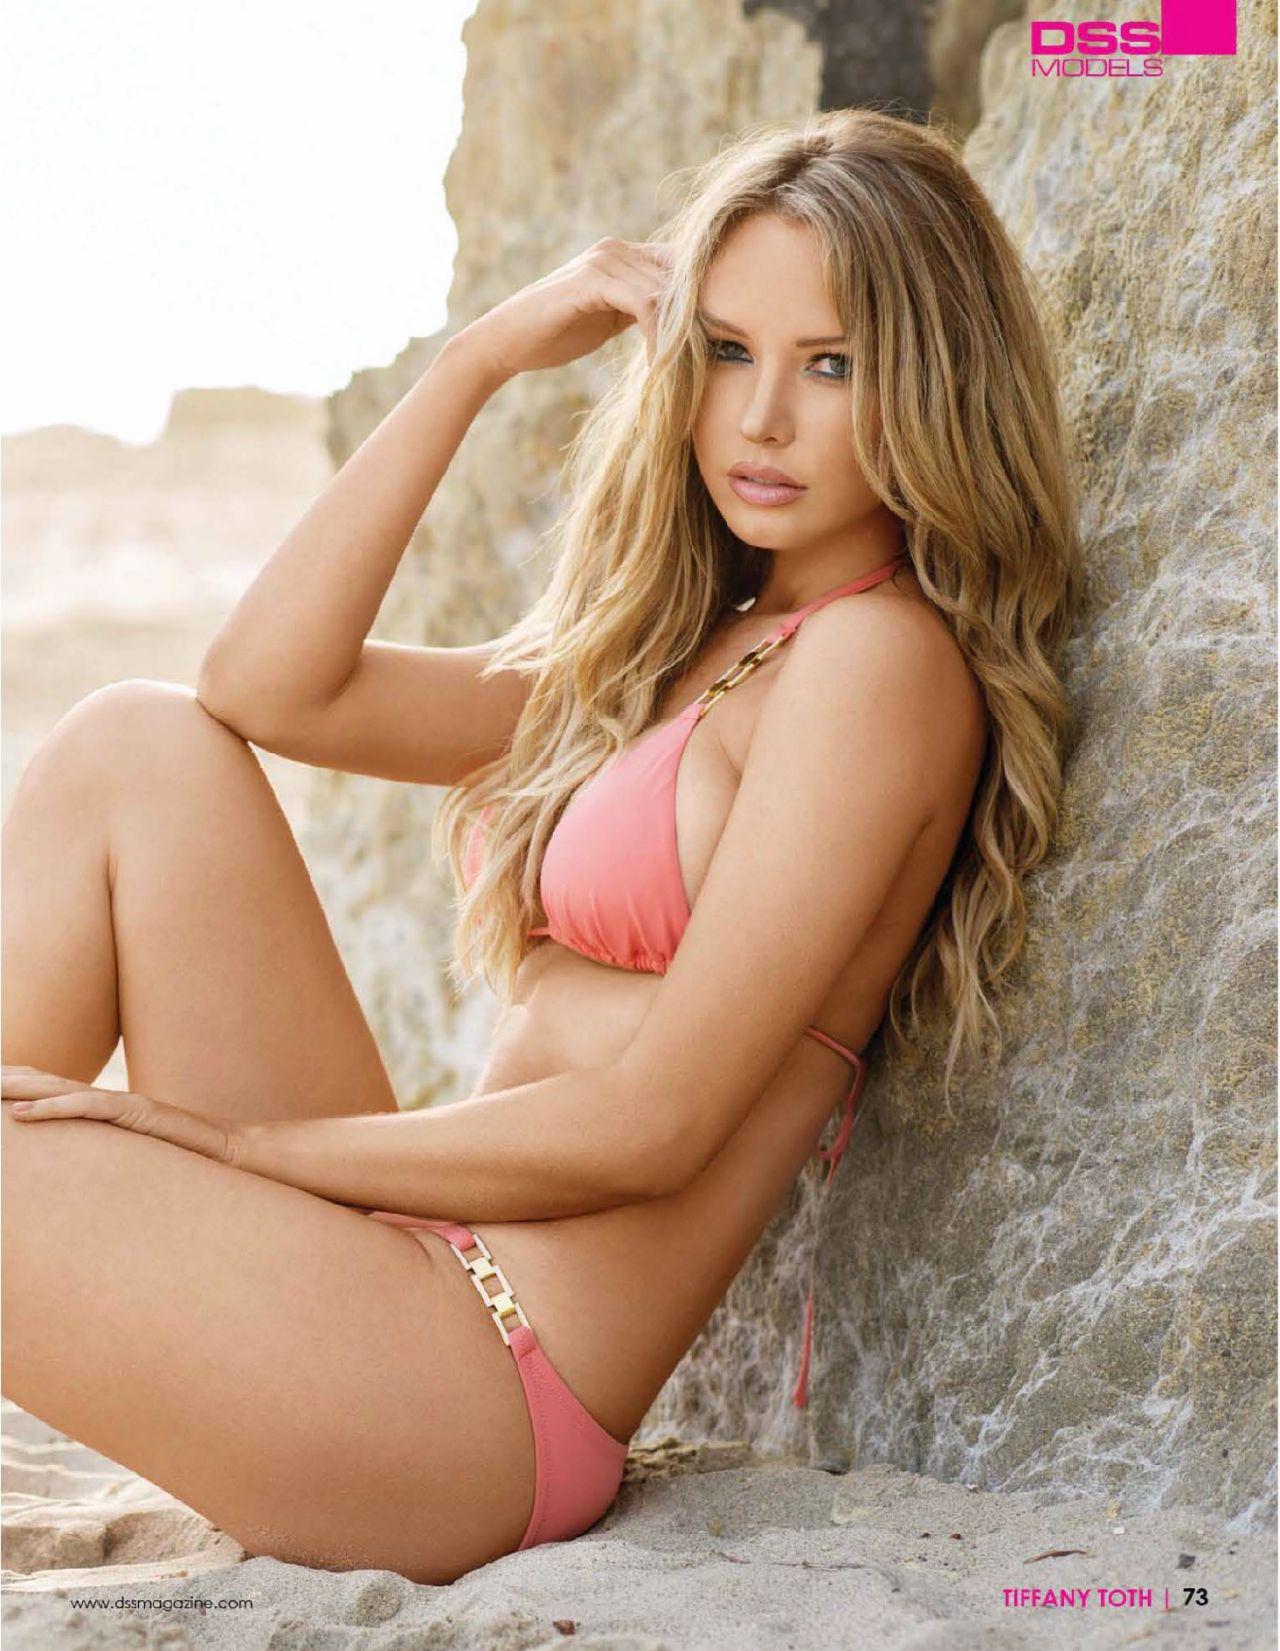 Tiffany Toth Dss Magazine Spain May June 2014 Issue